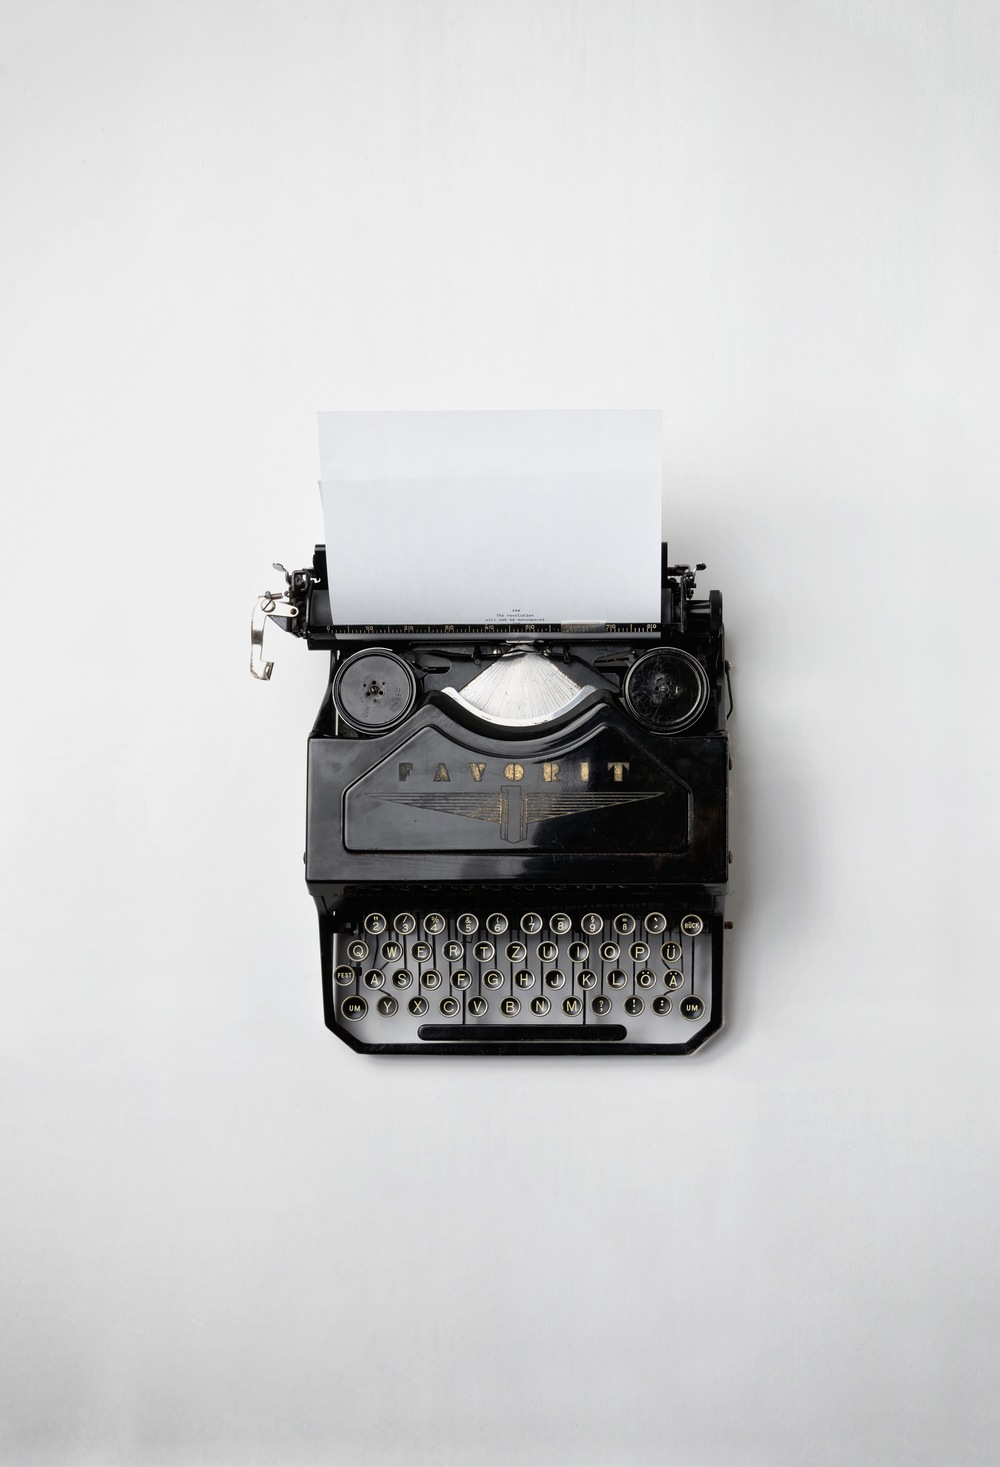 """  Typewriter  "" by   Florian Klauer   is licensed under   CC0 1.0   and cropped from the original."